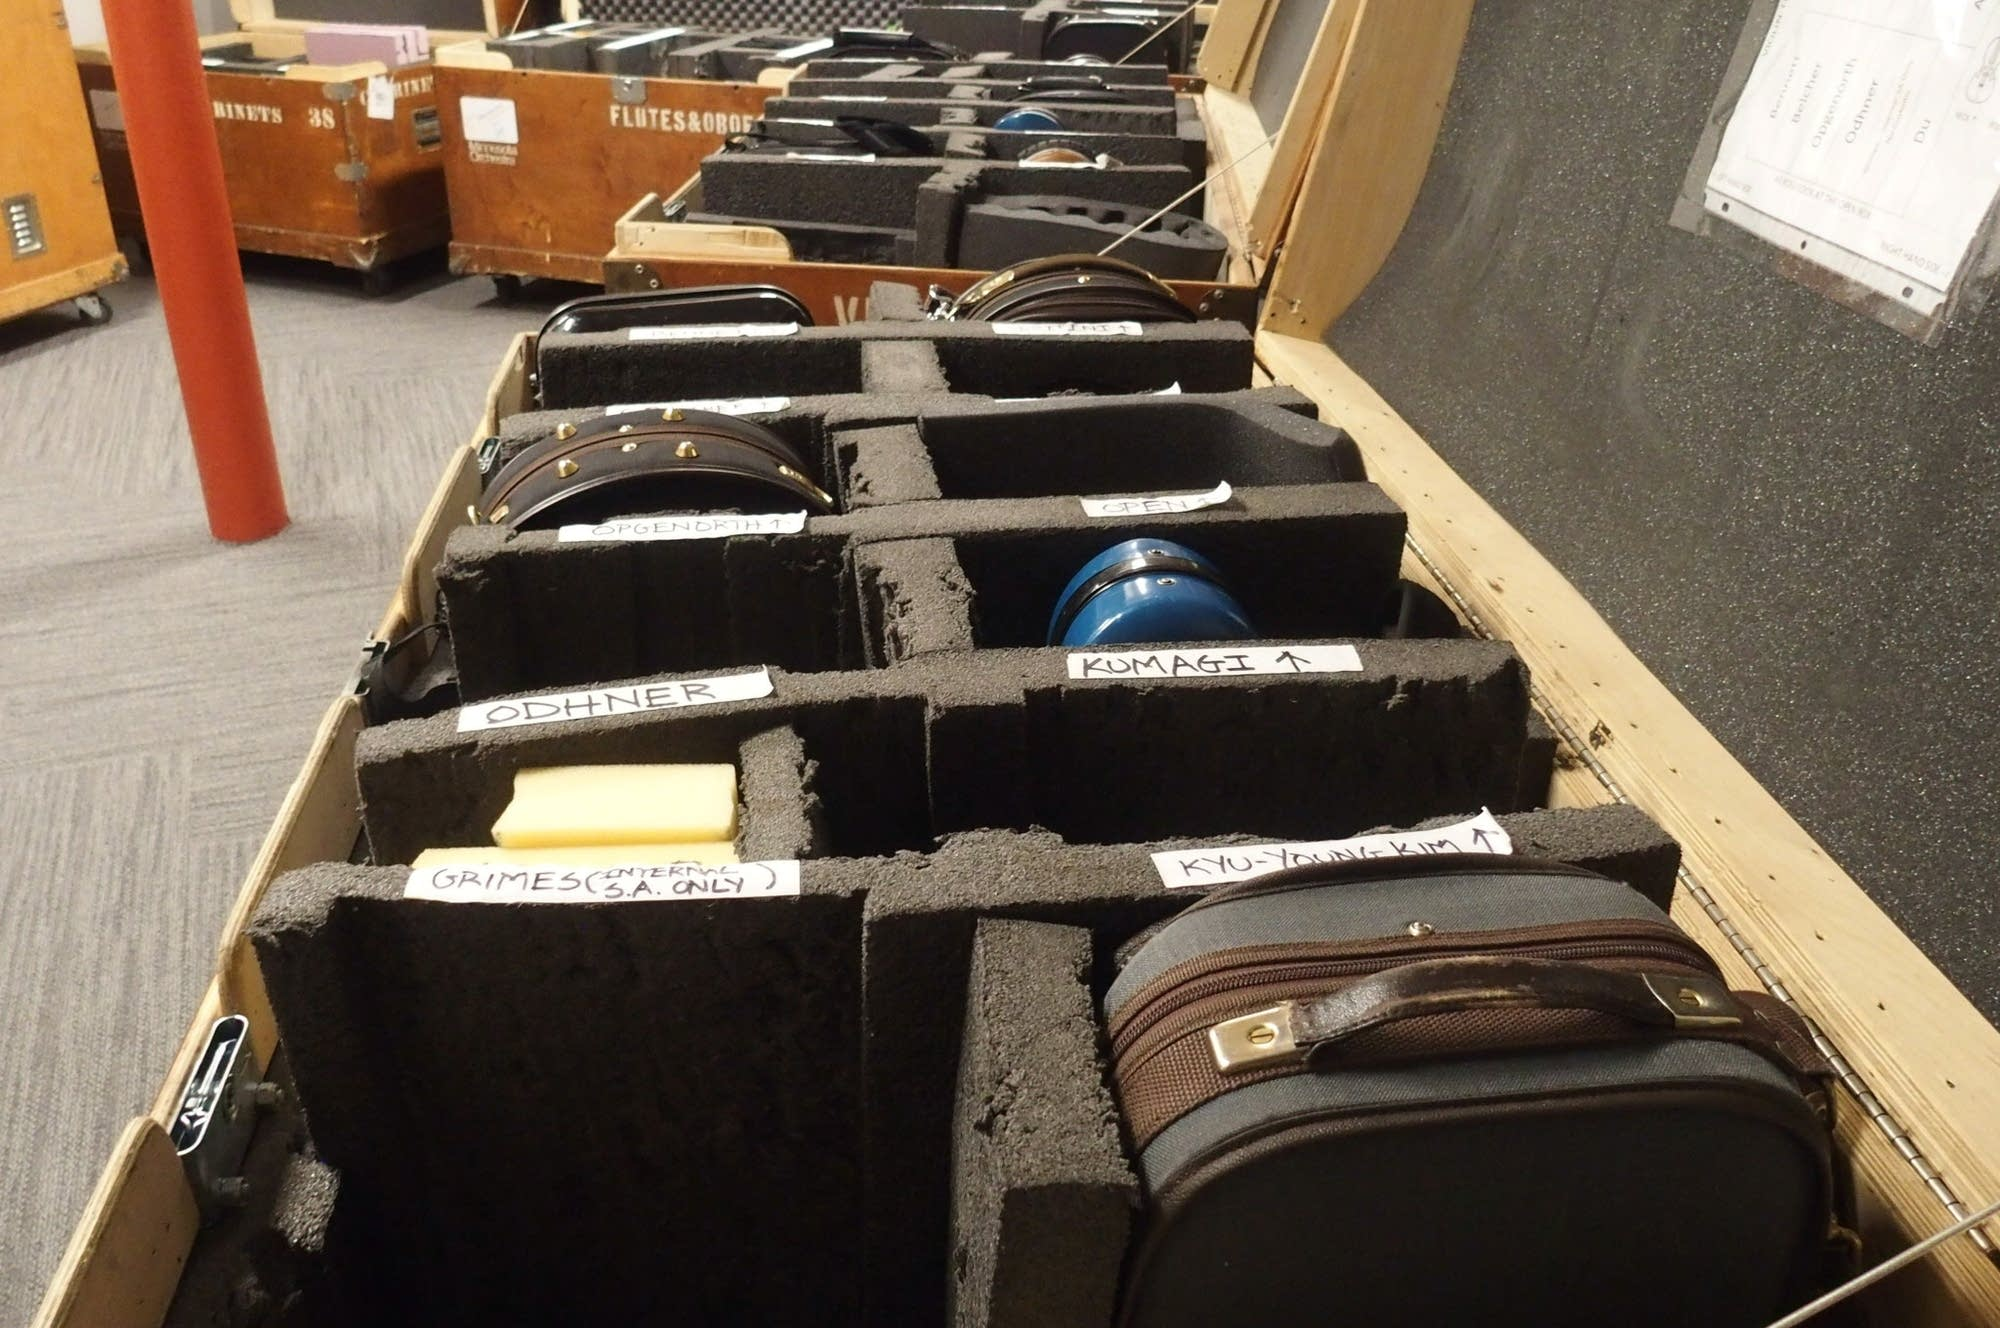 Tour cases filled with violins await the instruments' owners.